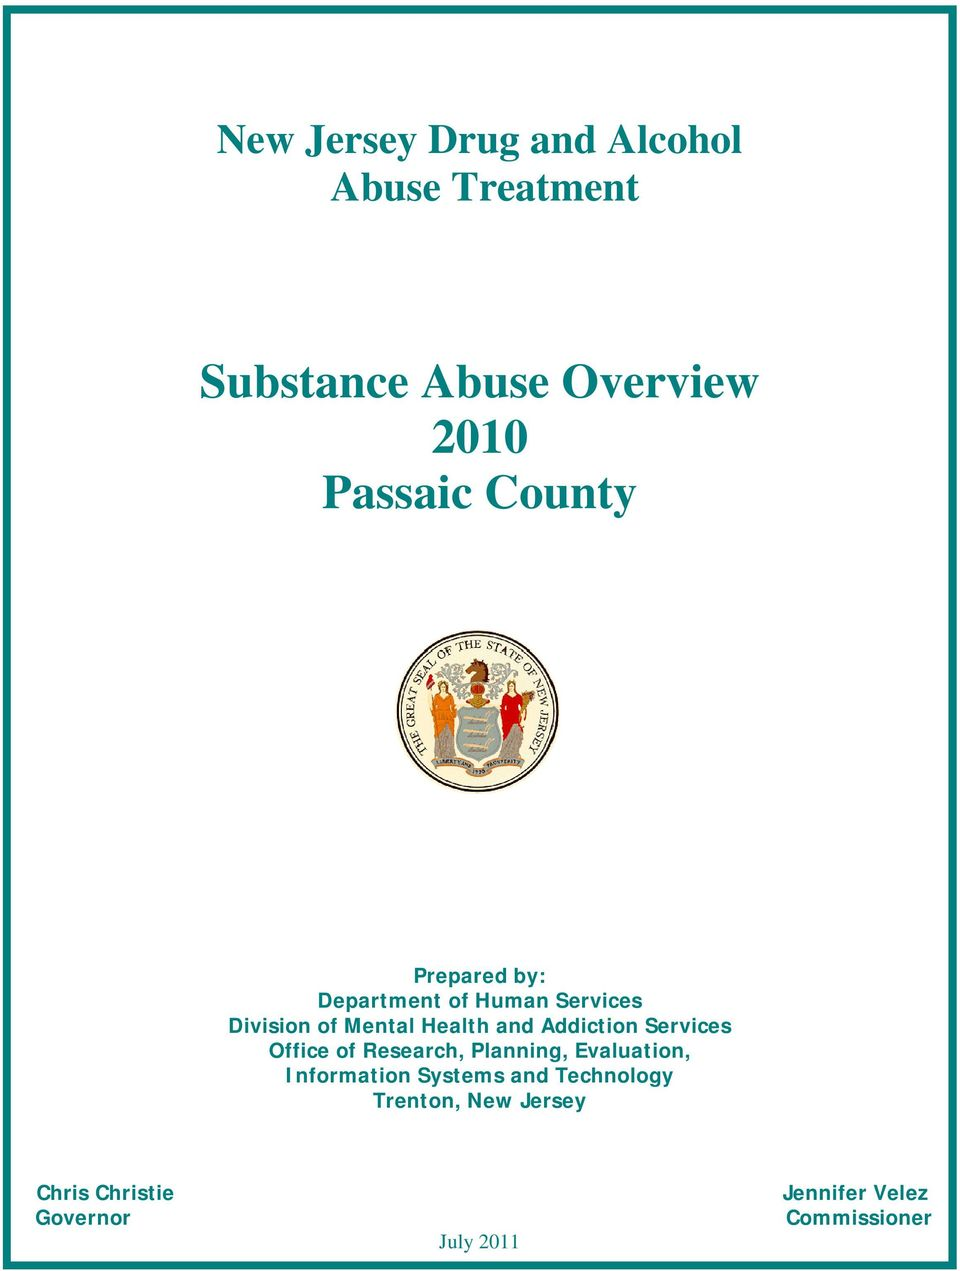 Addiction Services Office of Research, Planning, Evaluation, Information Systems and